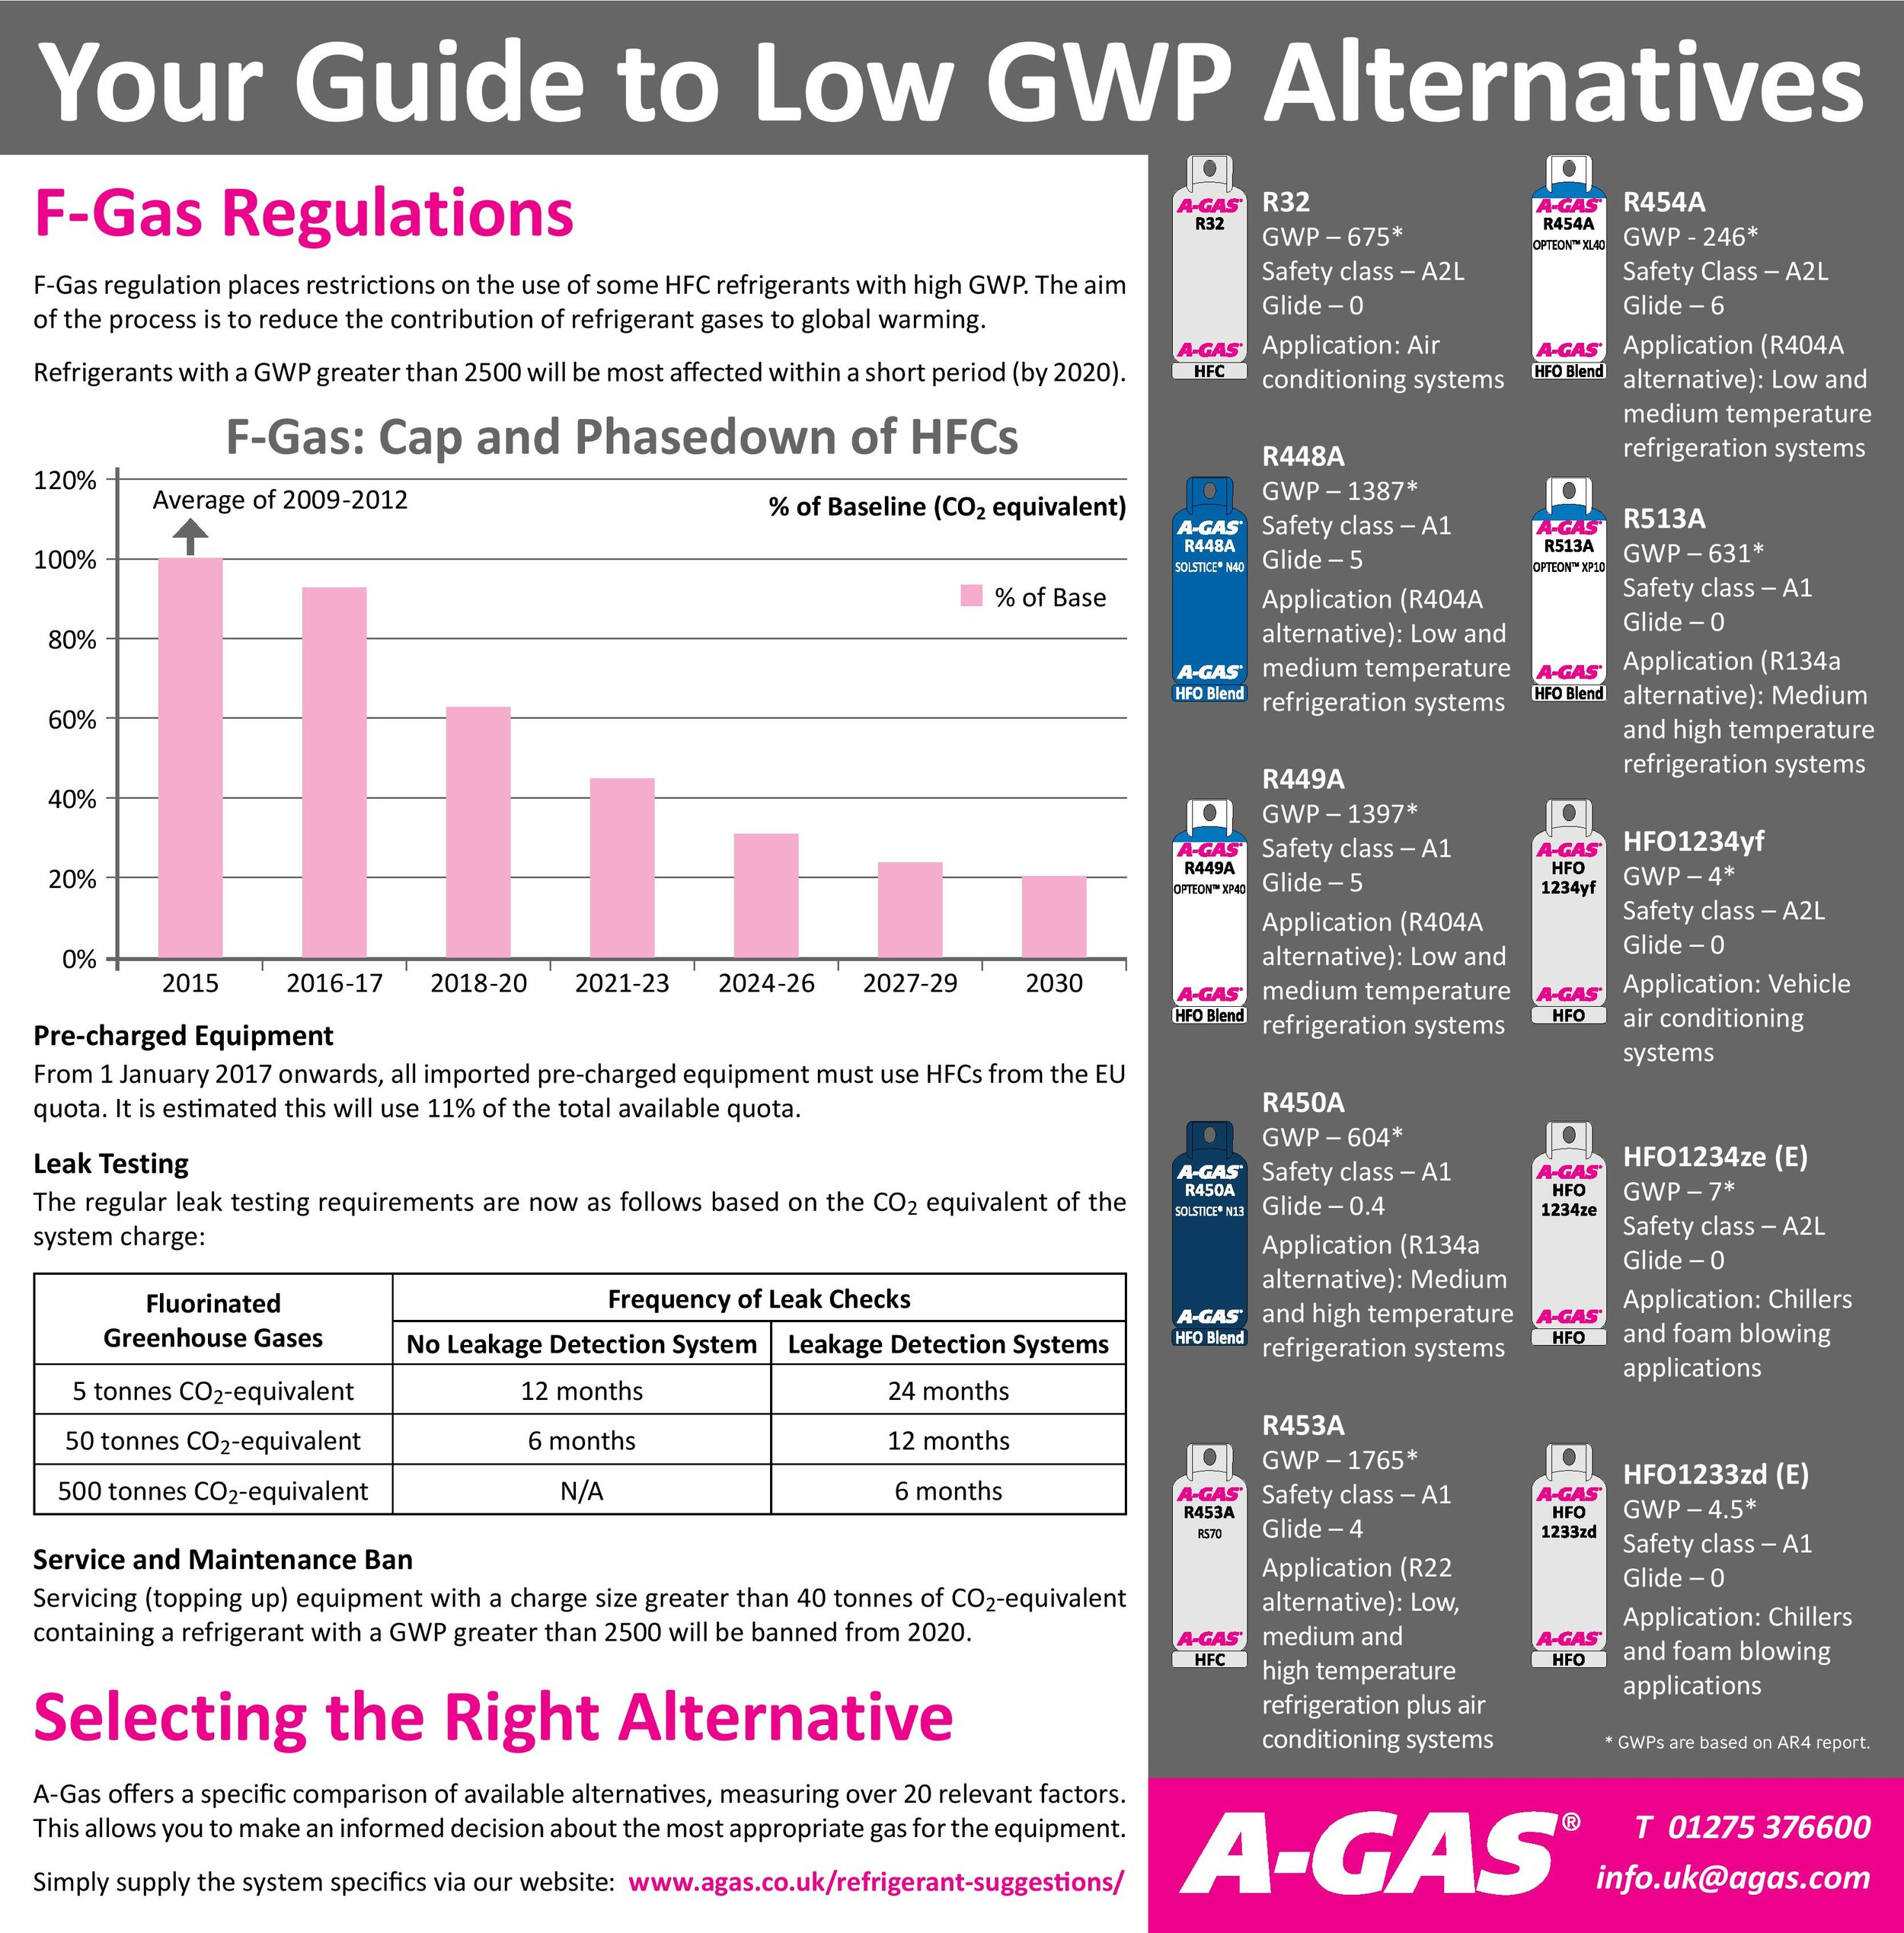 a-gas-f-gas-regulations-your-guide-to-low-gwp-alternatives-page-001.jpg